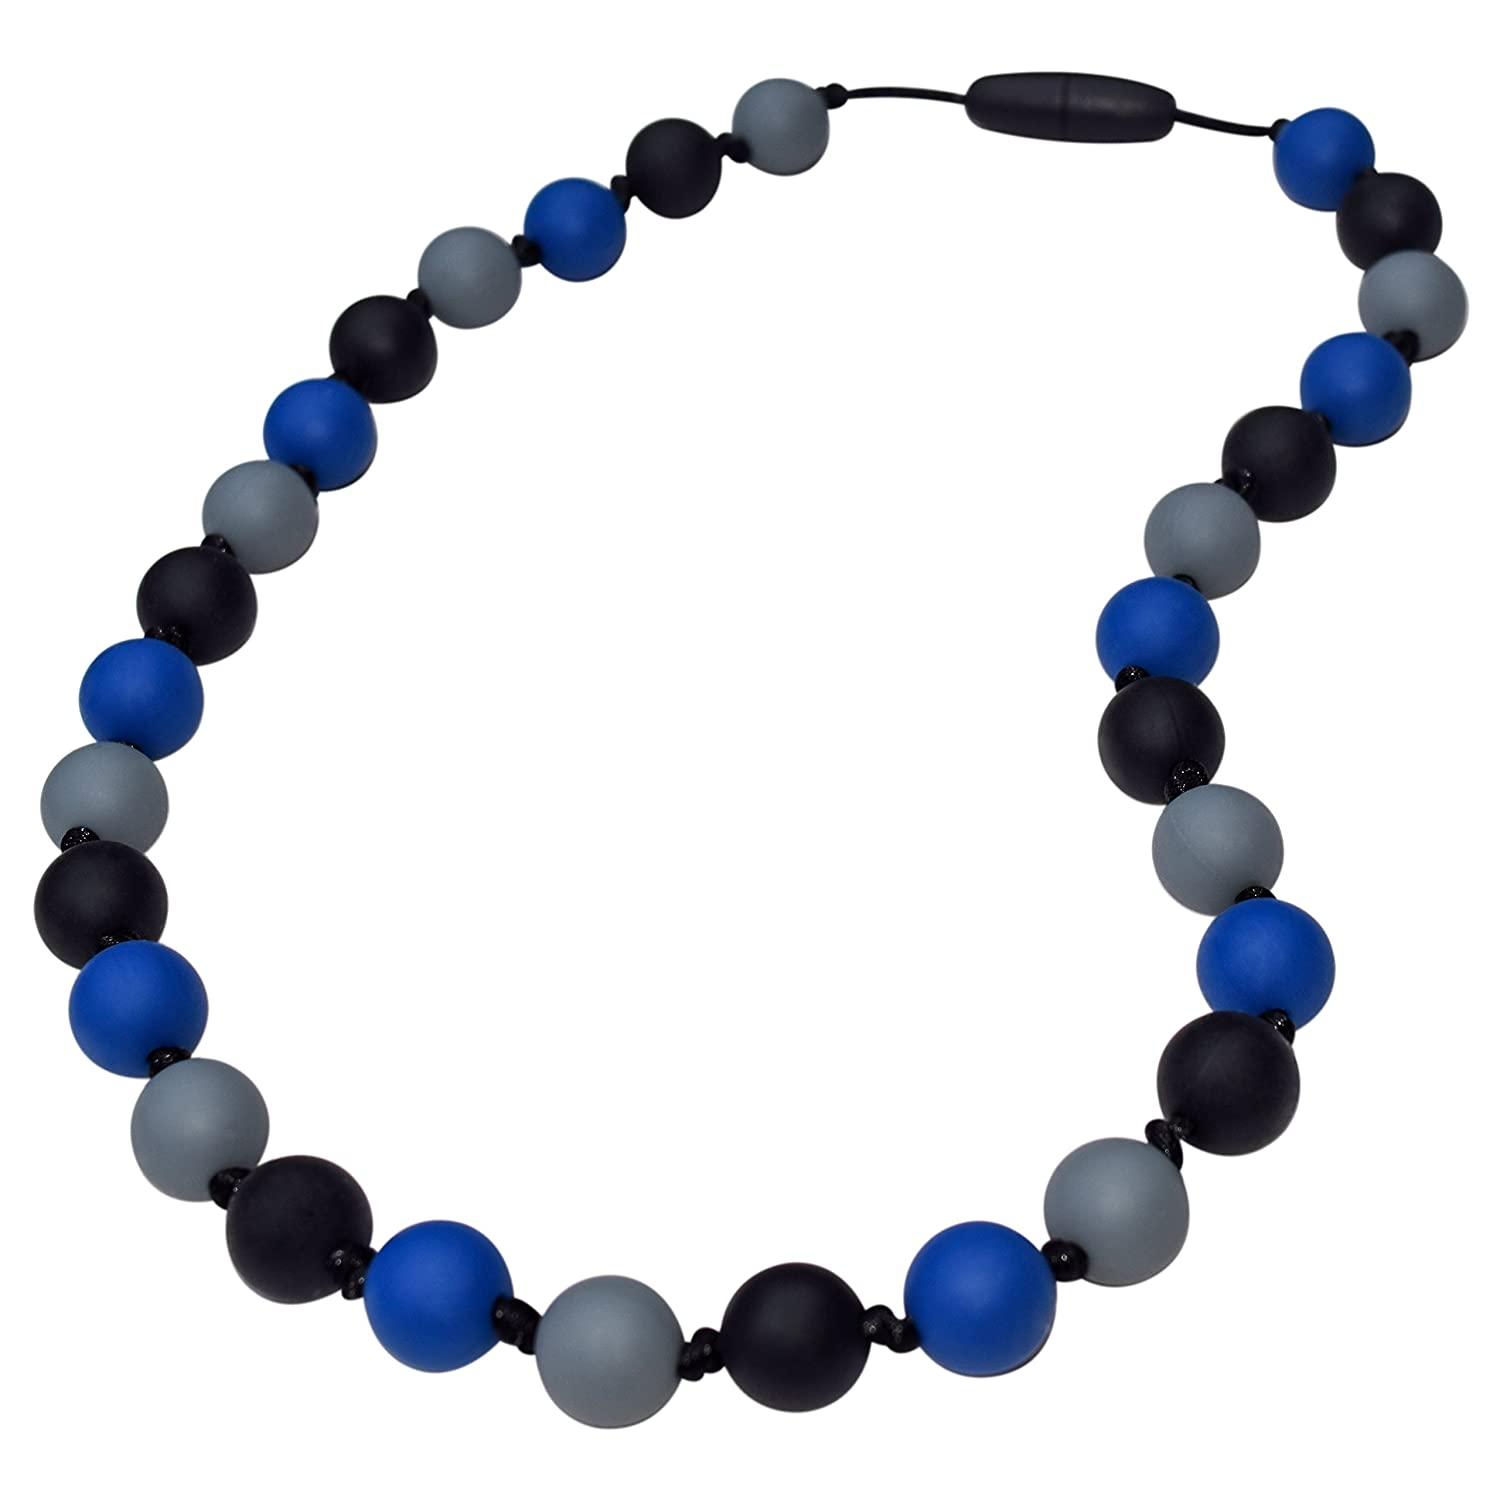 Munchables Chewable Necklace - Navy Camo Sensory Chewelry